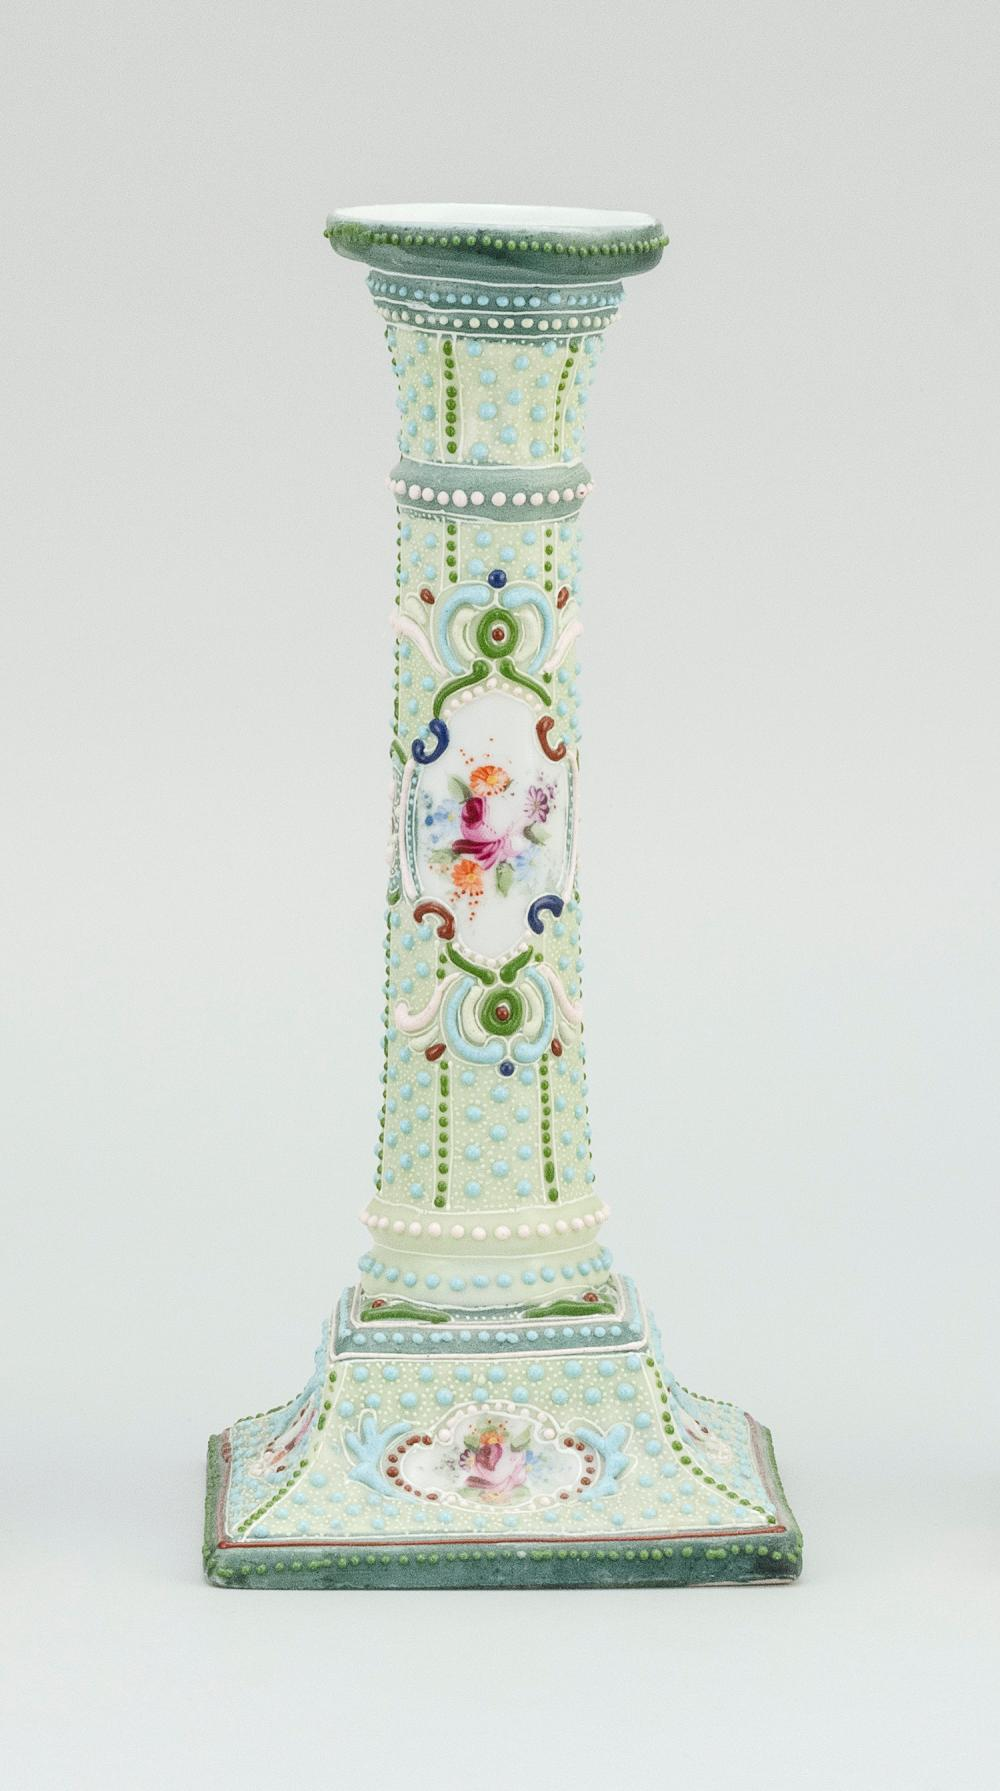 MORIAGE NIPPON PORCELAIN CANDLESTICK With floral cartouches on a beaded ground. Height 9.4